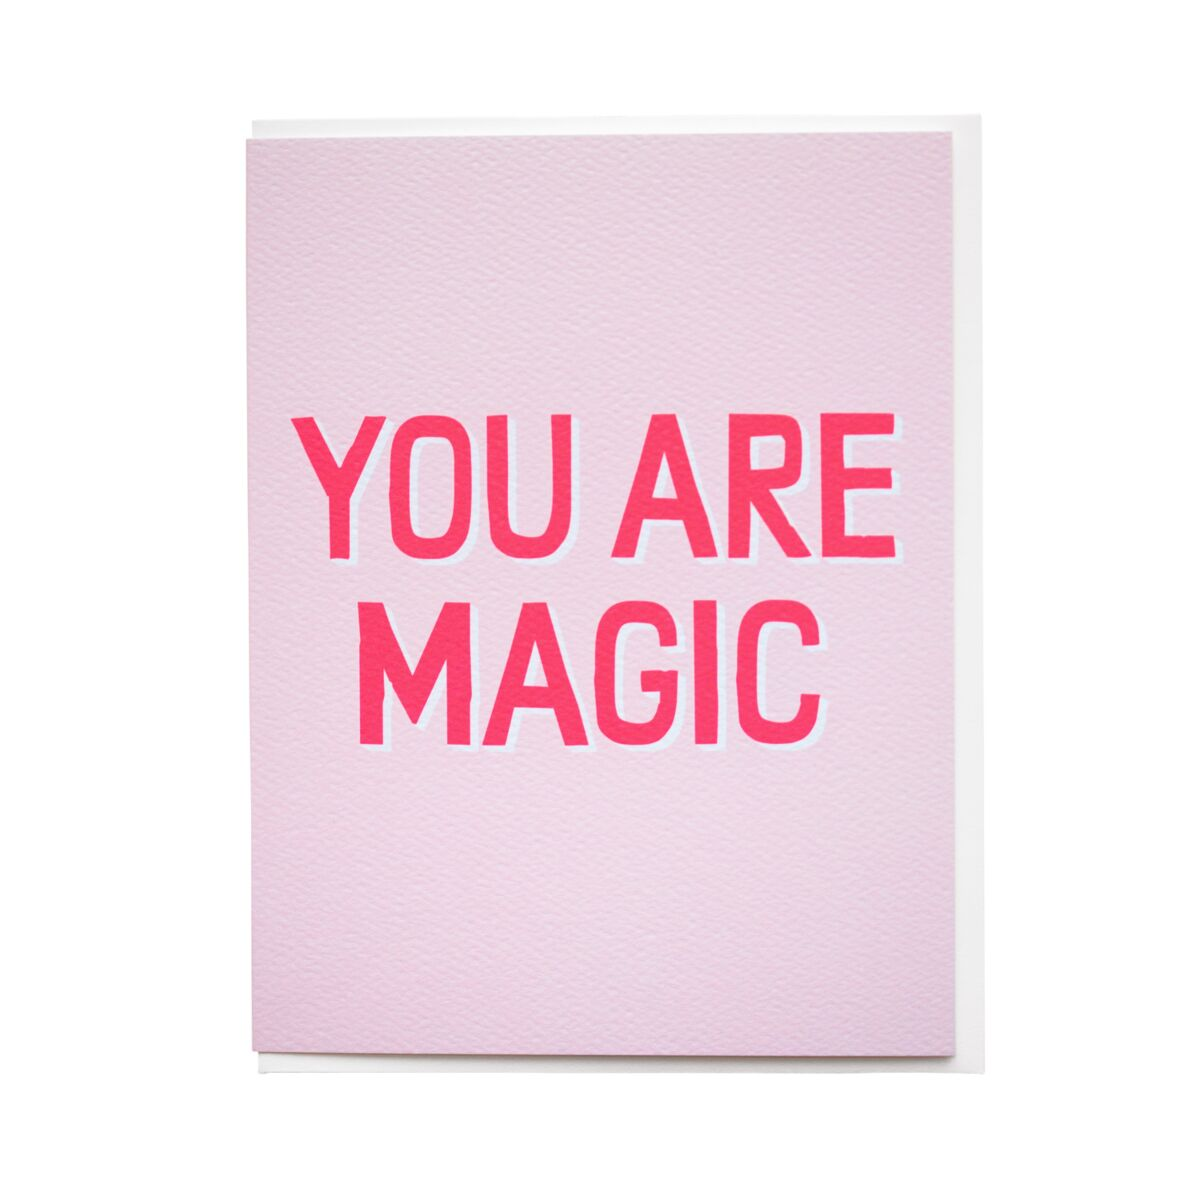 You Are Magic Card image